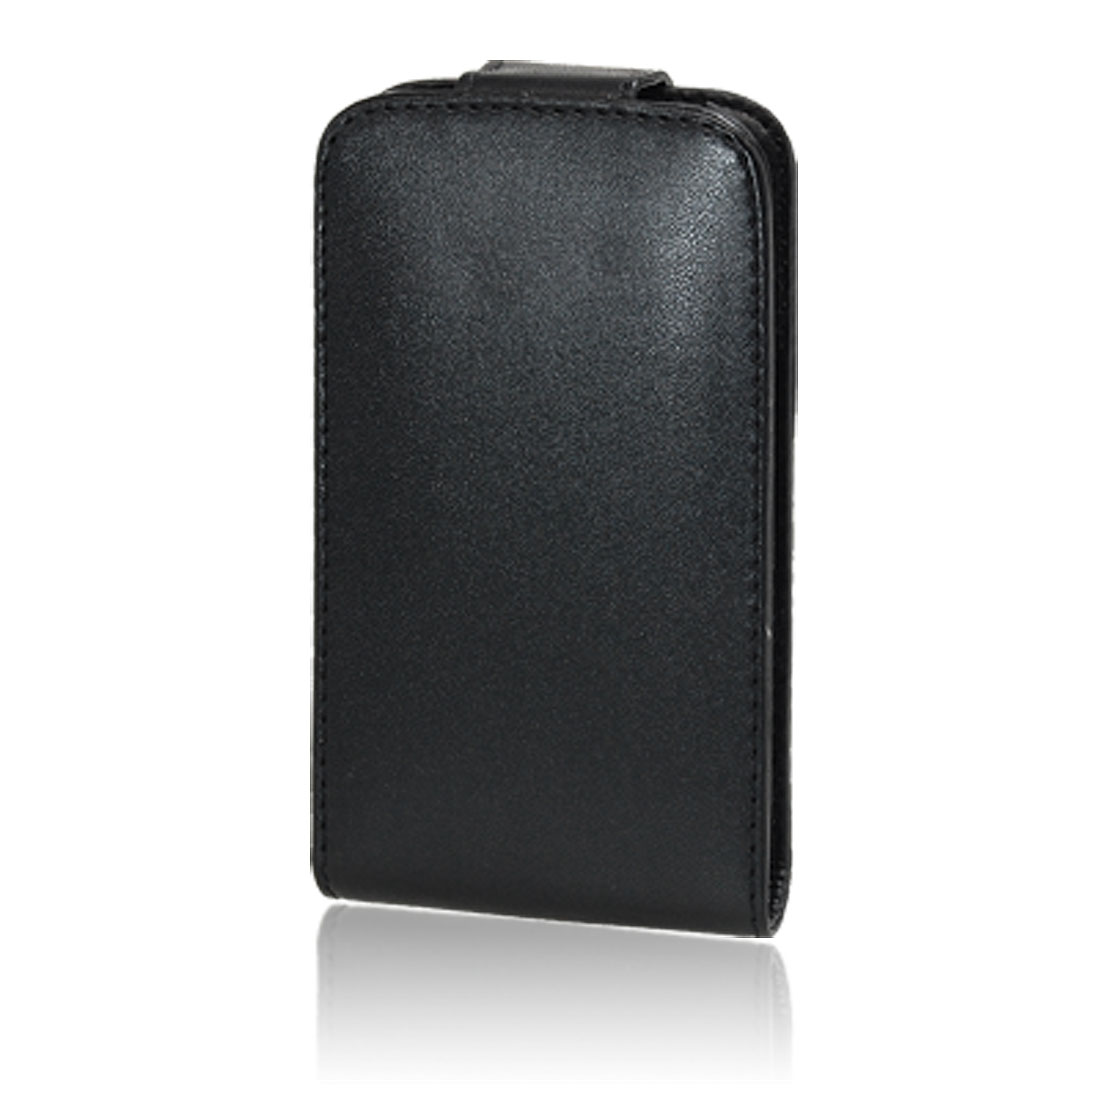 Vertical Flap Magnetic Closure Case Black for Cell Phone